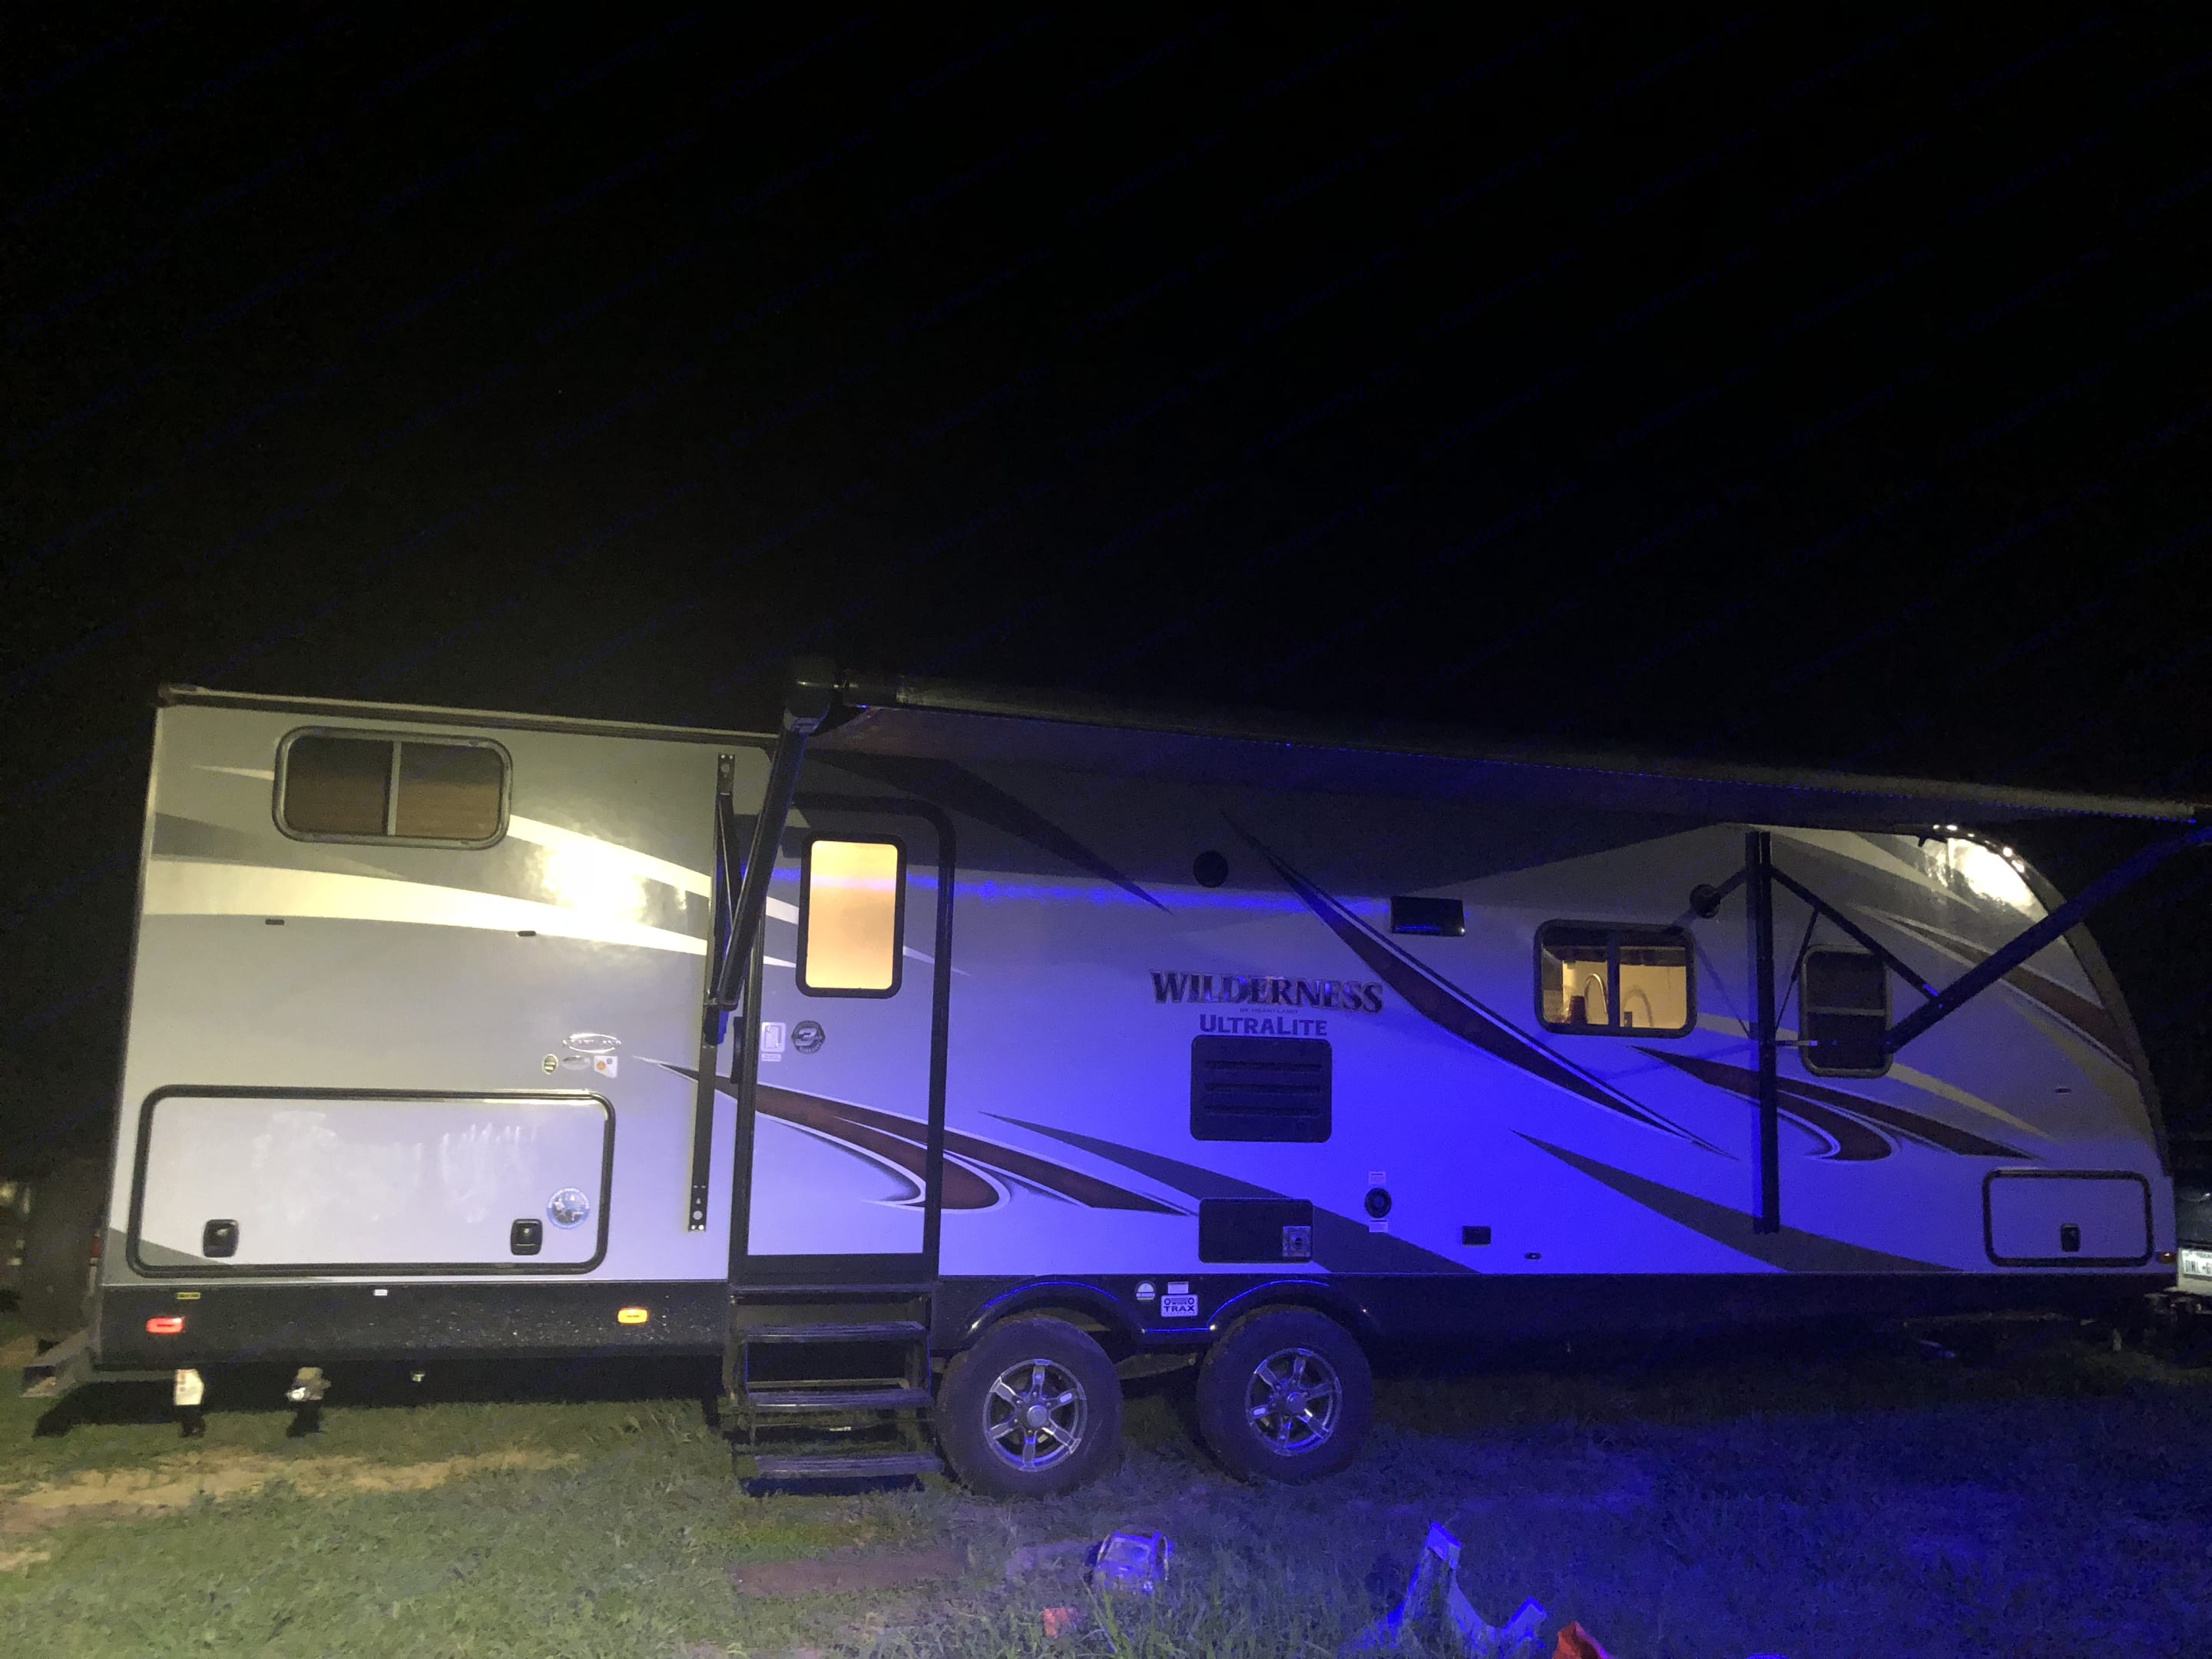 Awning with multiple light changers . Heartland Wilderness 2018